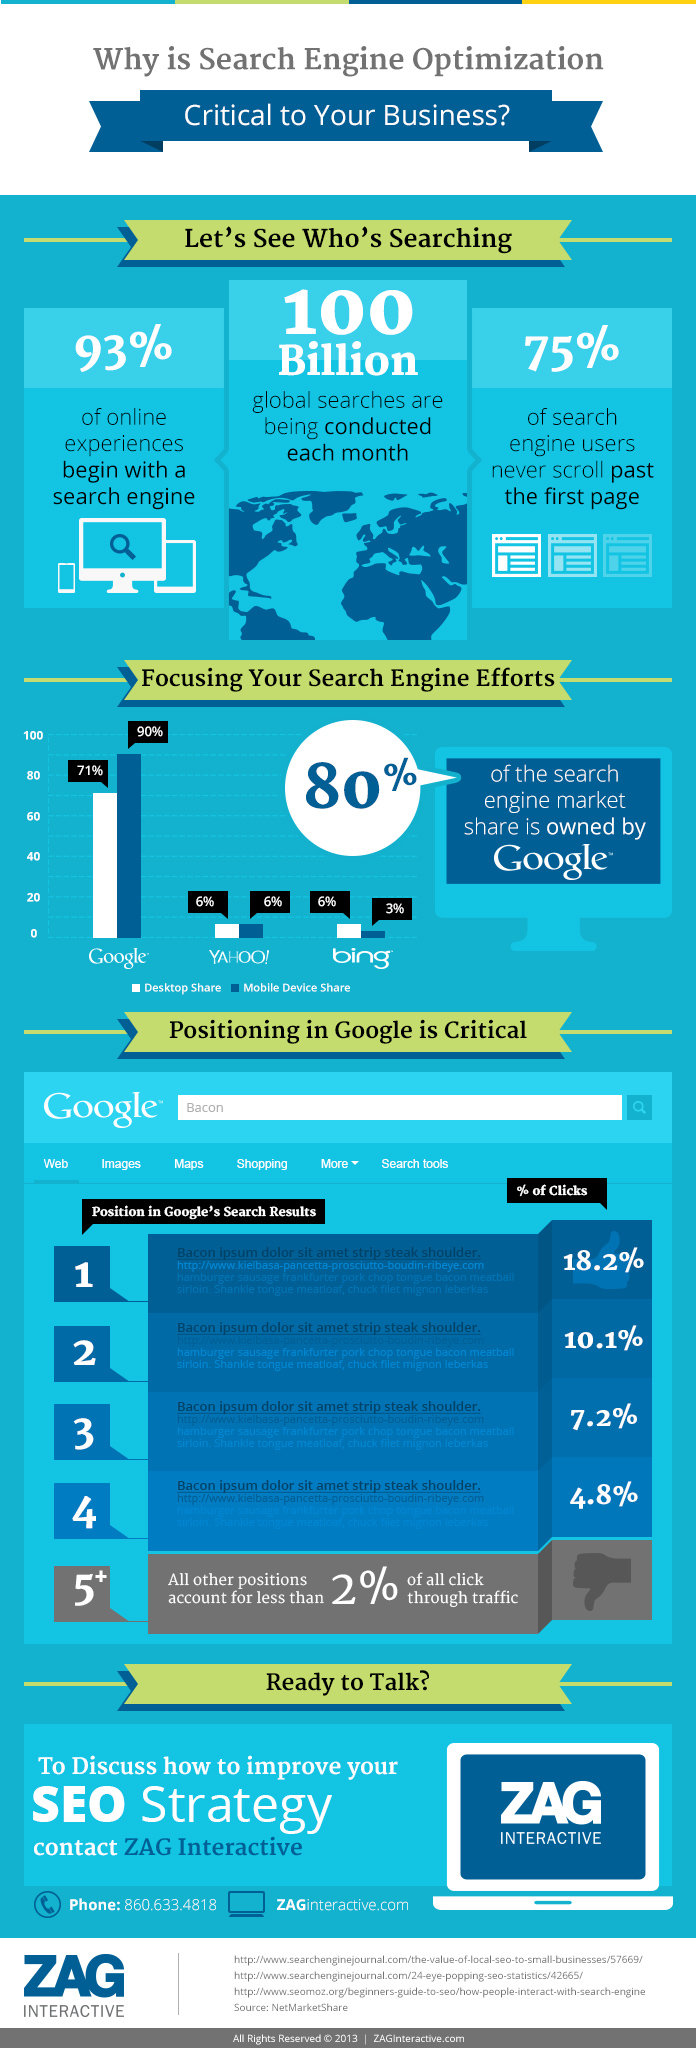 why is search engine optimization critical to your business? #infographic